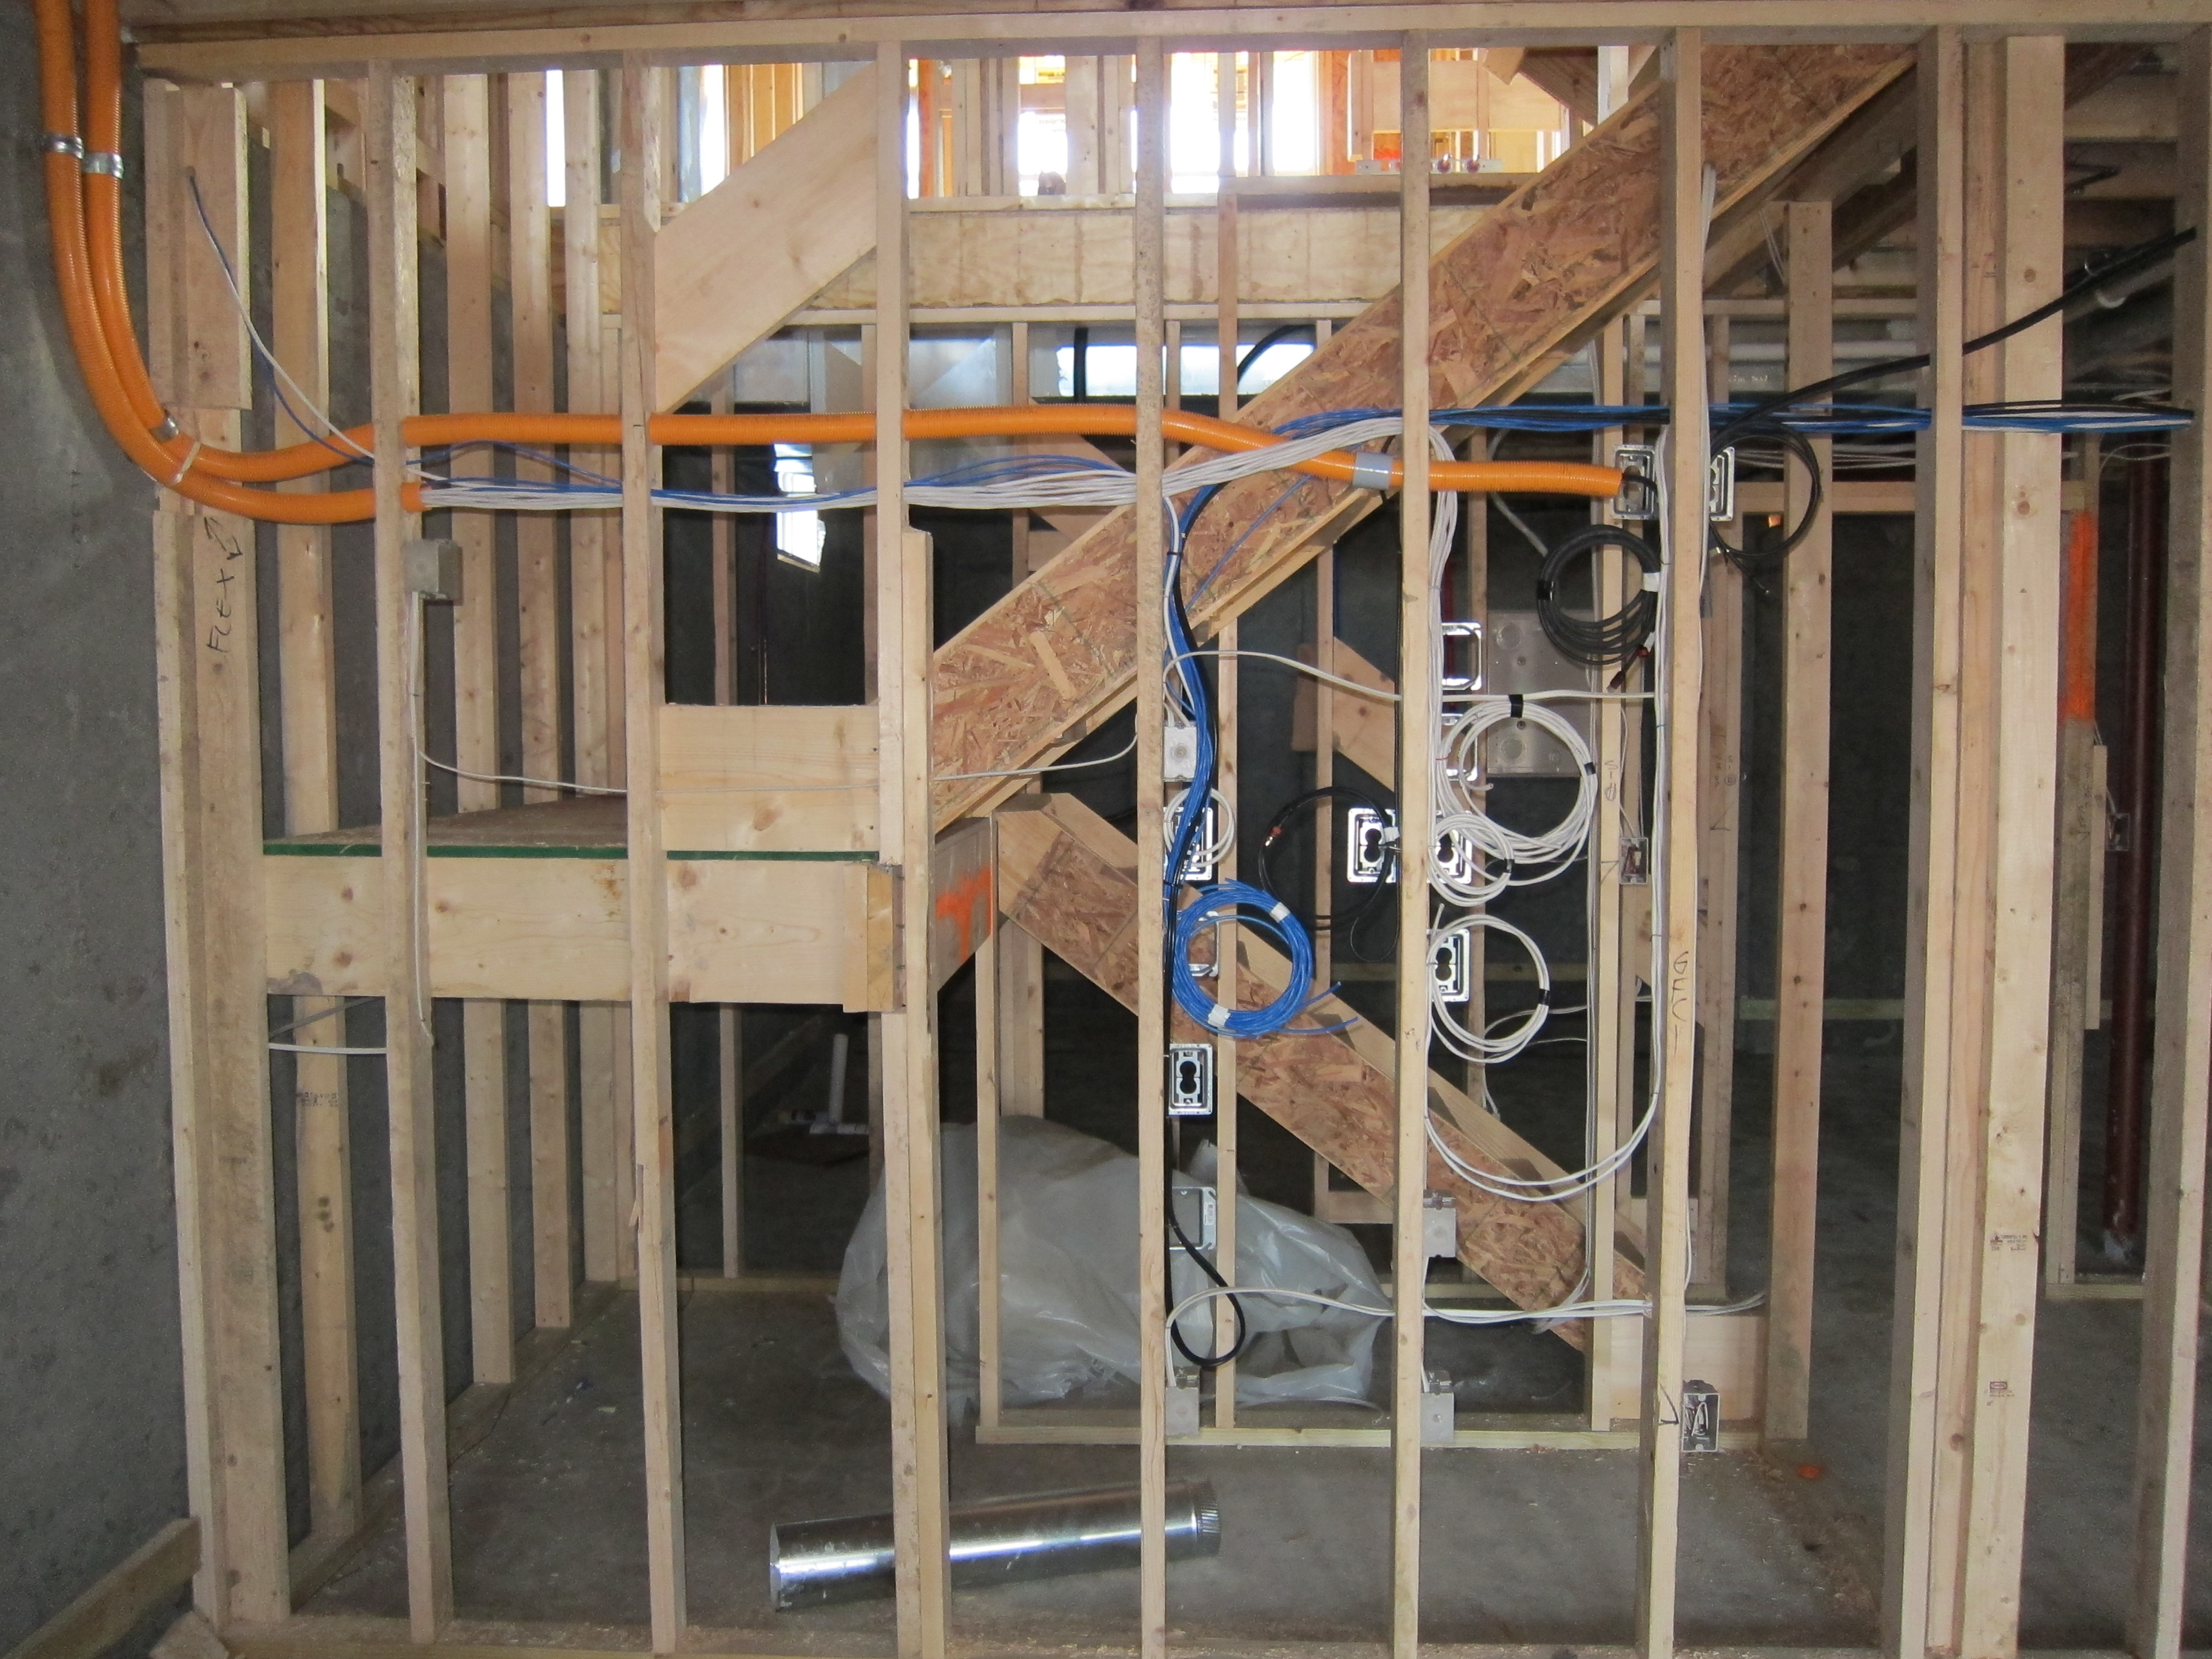 wiring a basement canada wire center u2022 rh inkshirts co Wiring a New Room Wiring Diagrams Lighting for Basement